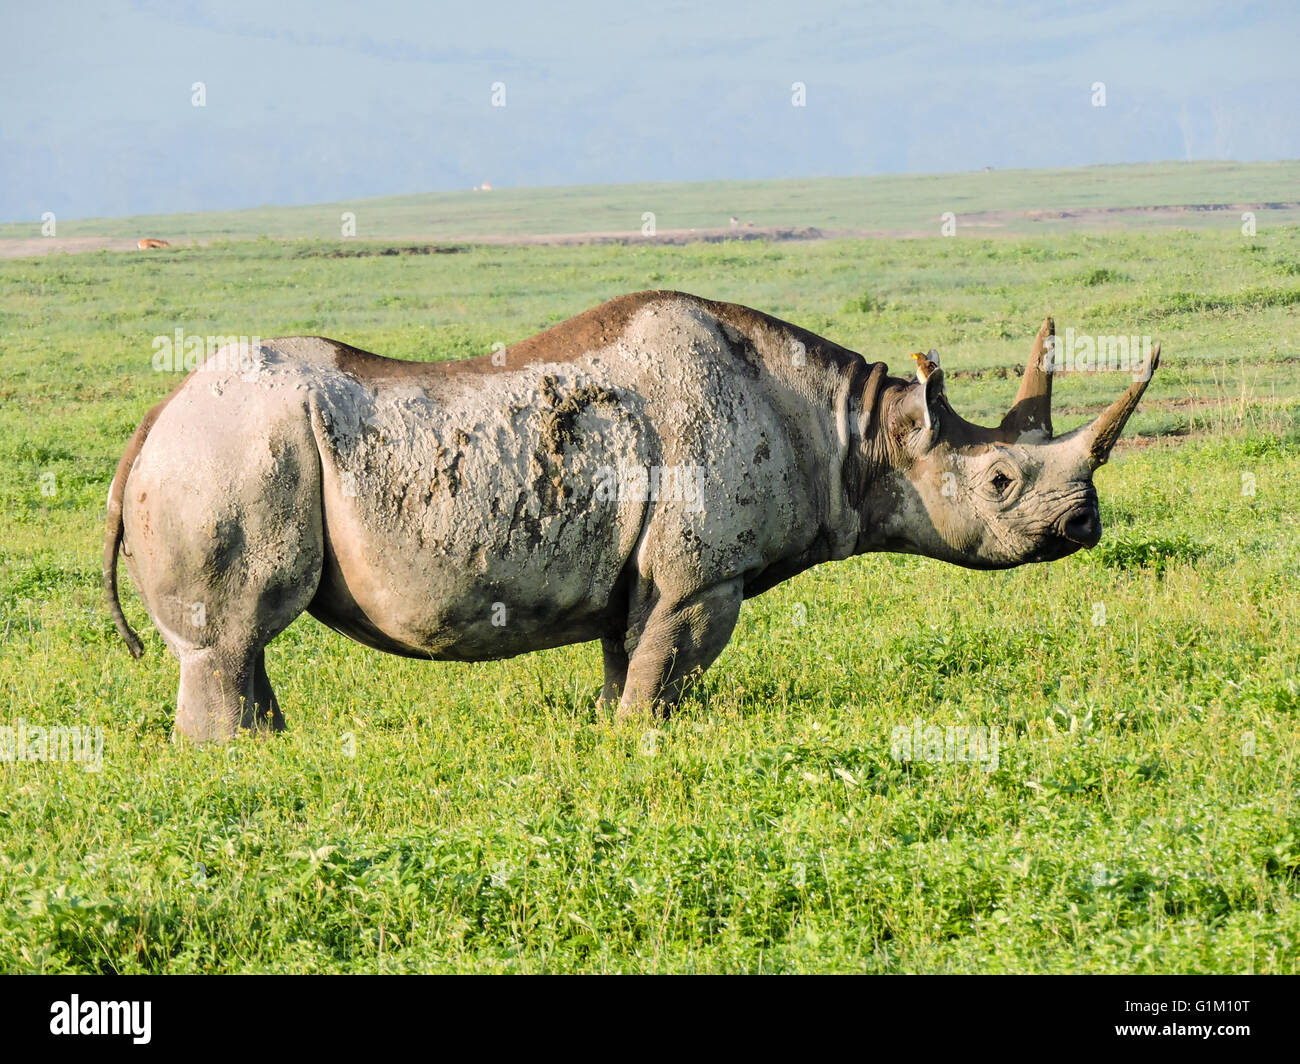 Black Rhinoceros - Stock Image